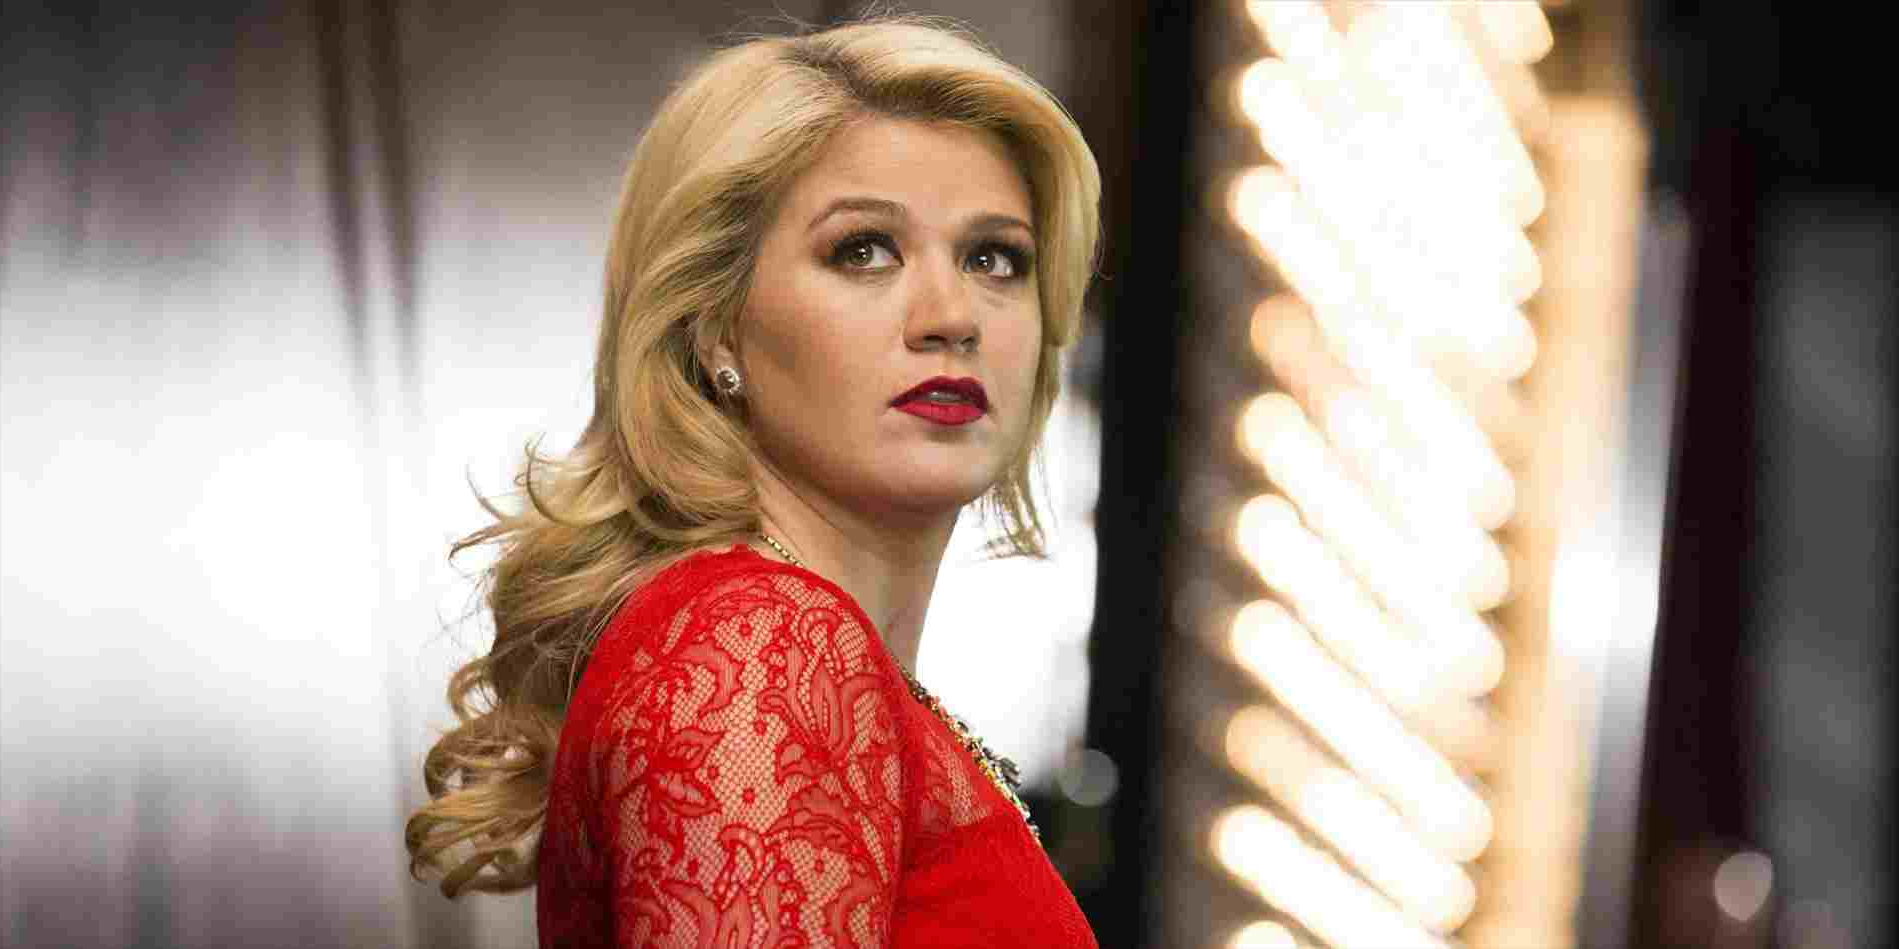 Faces Best Cuts Face Shaperhredbookmagcom Styles Kelly Clarkson For Kelly Clarkson Short Haircut (View 21 of 25)